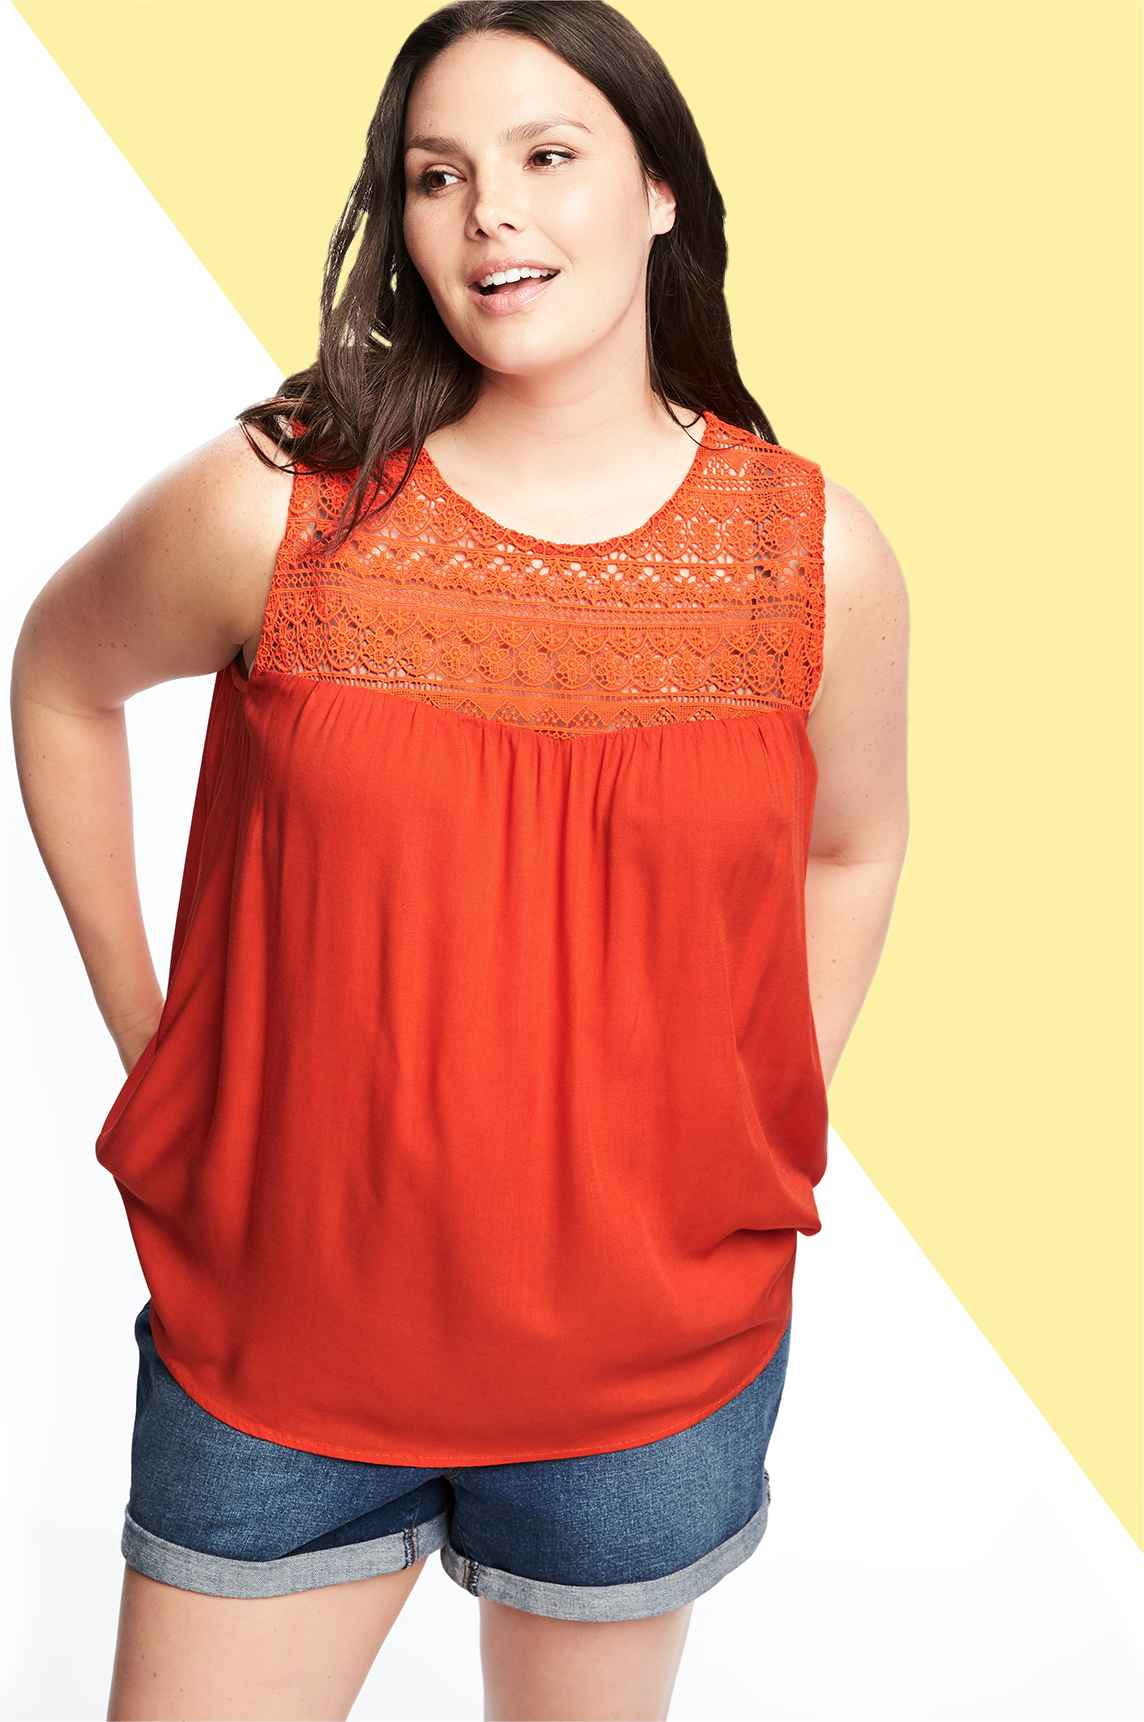 Women&39s Plus Size Clothes | Old Navy